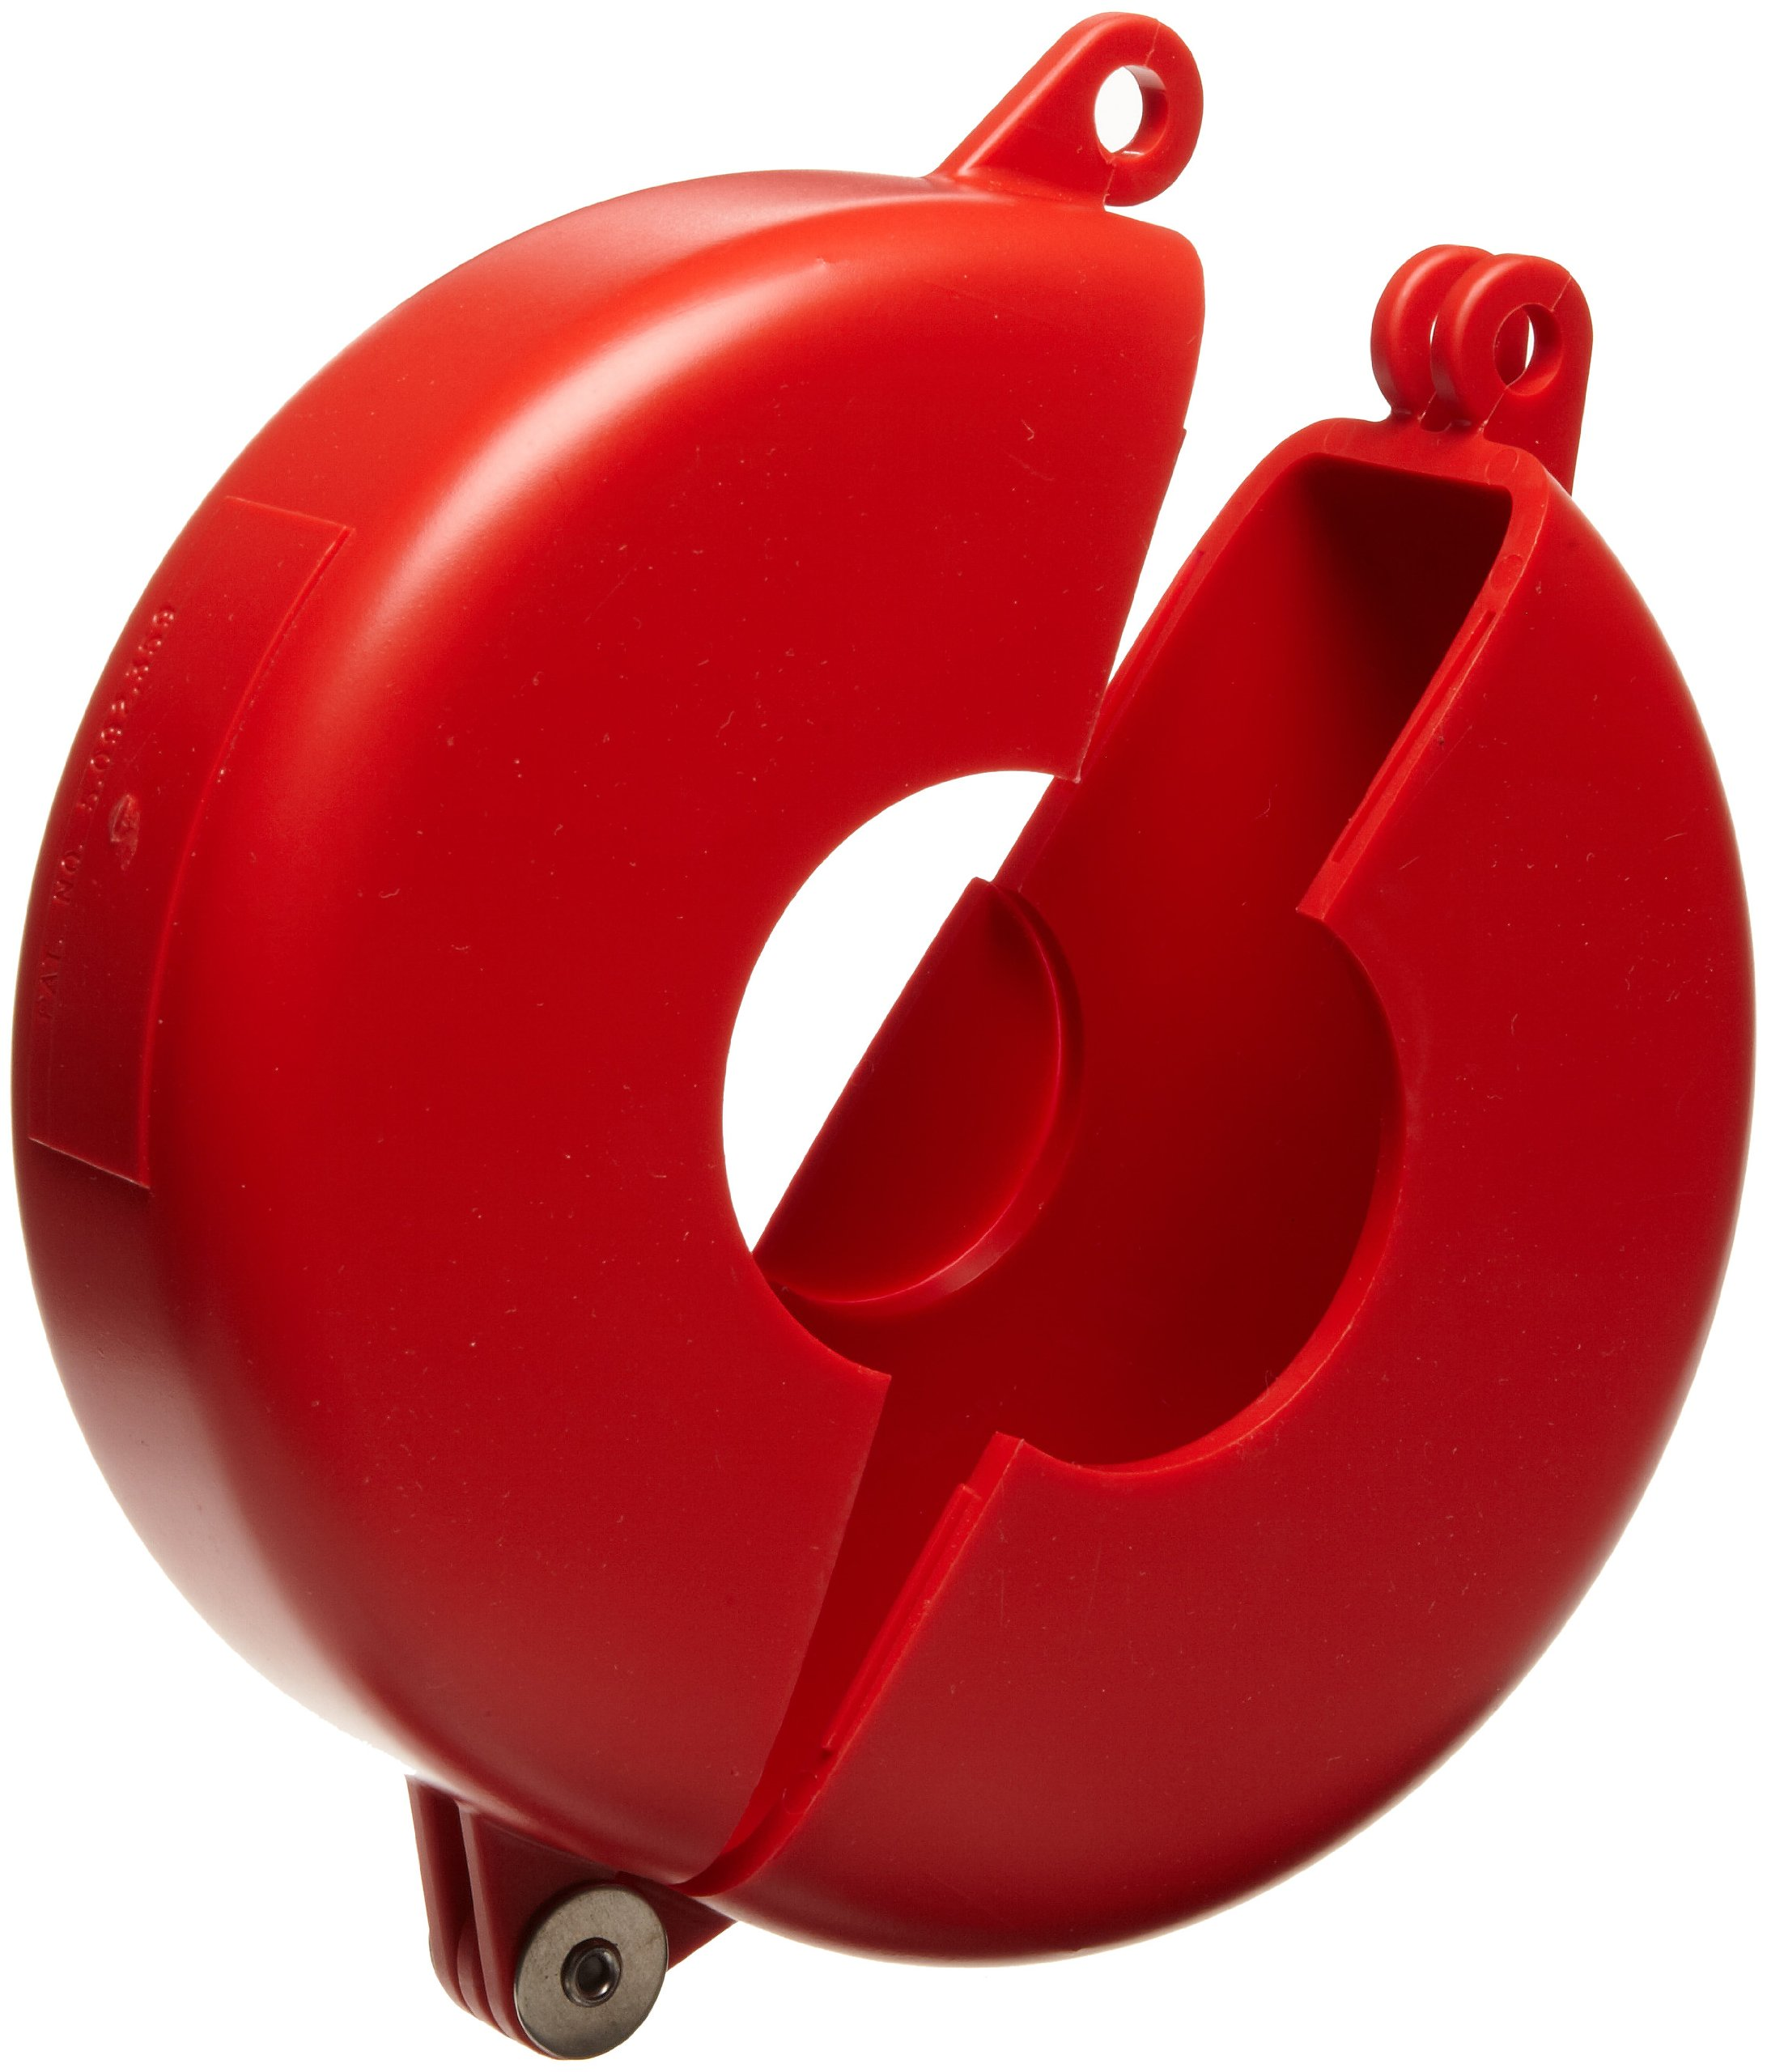 Brady Hinged Gate Valve Lockout, Red, for 1'' - 2-1/2'' Valve Handle Diameters